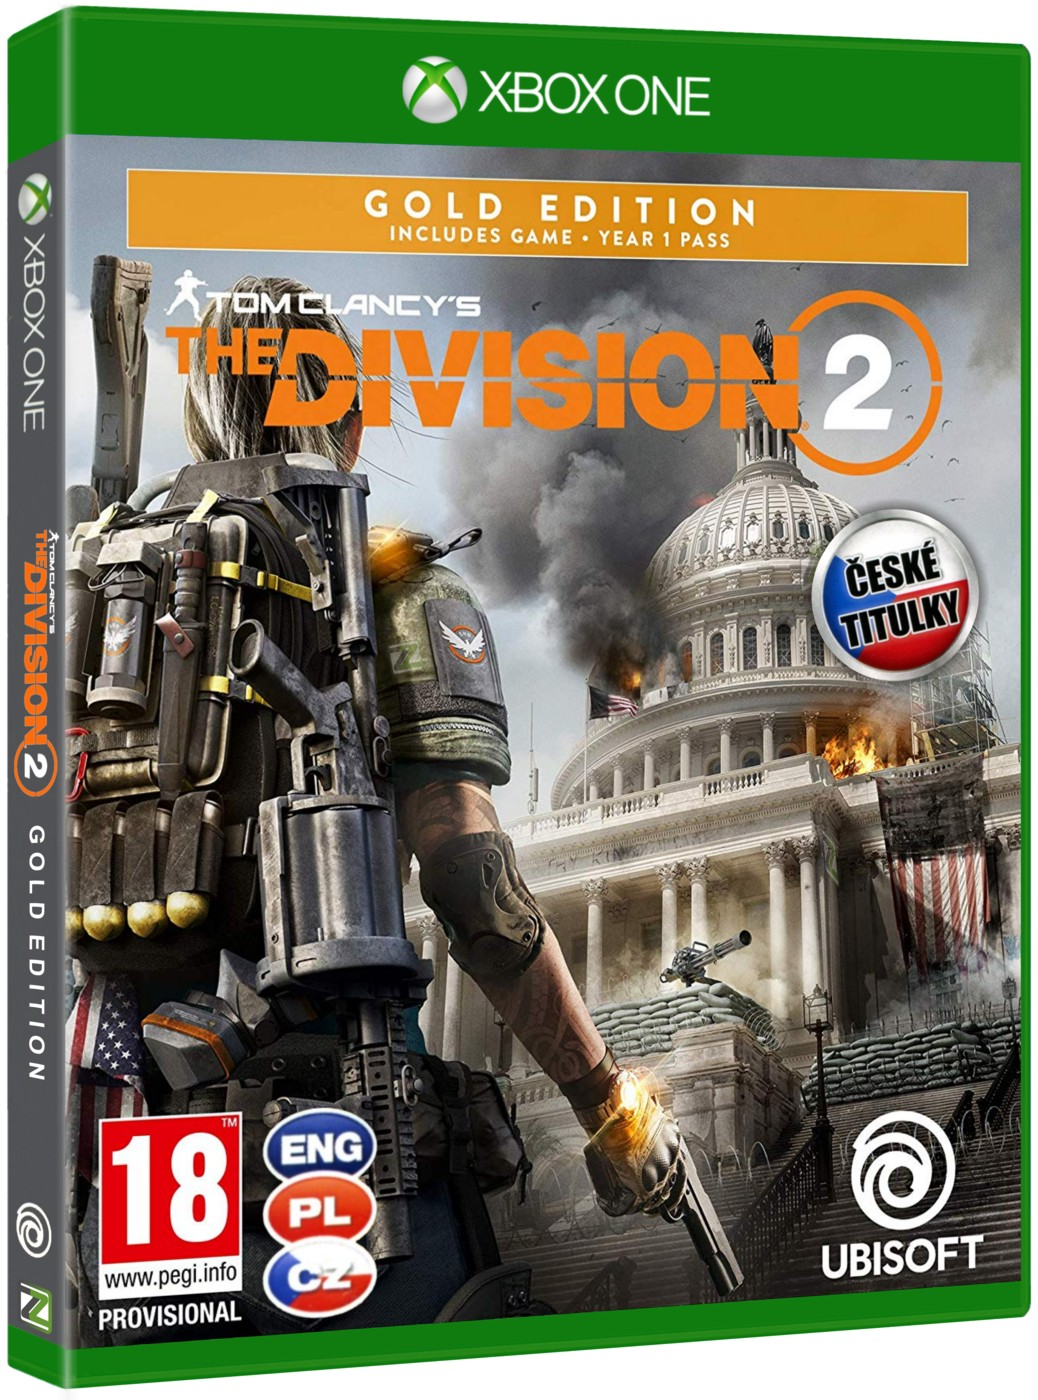 Tom Clancy's The Division 2 (Gold Edition) CZ - Xbox One